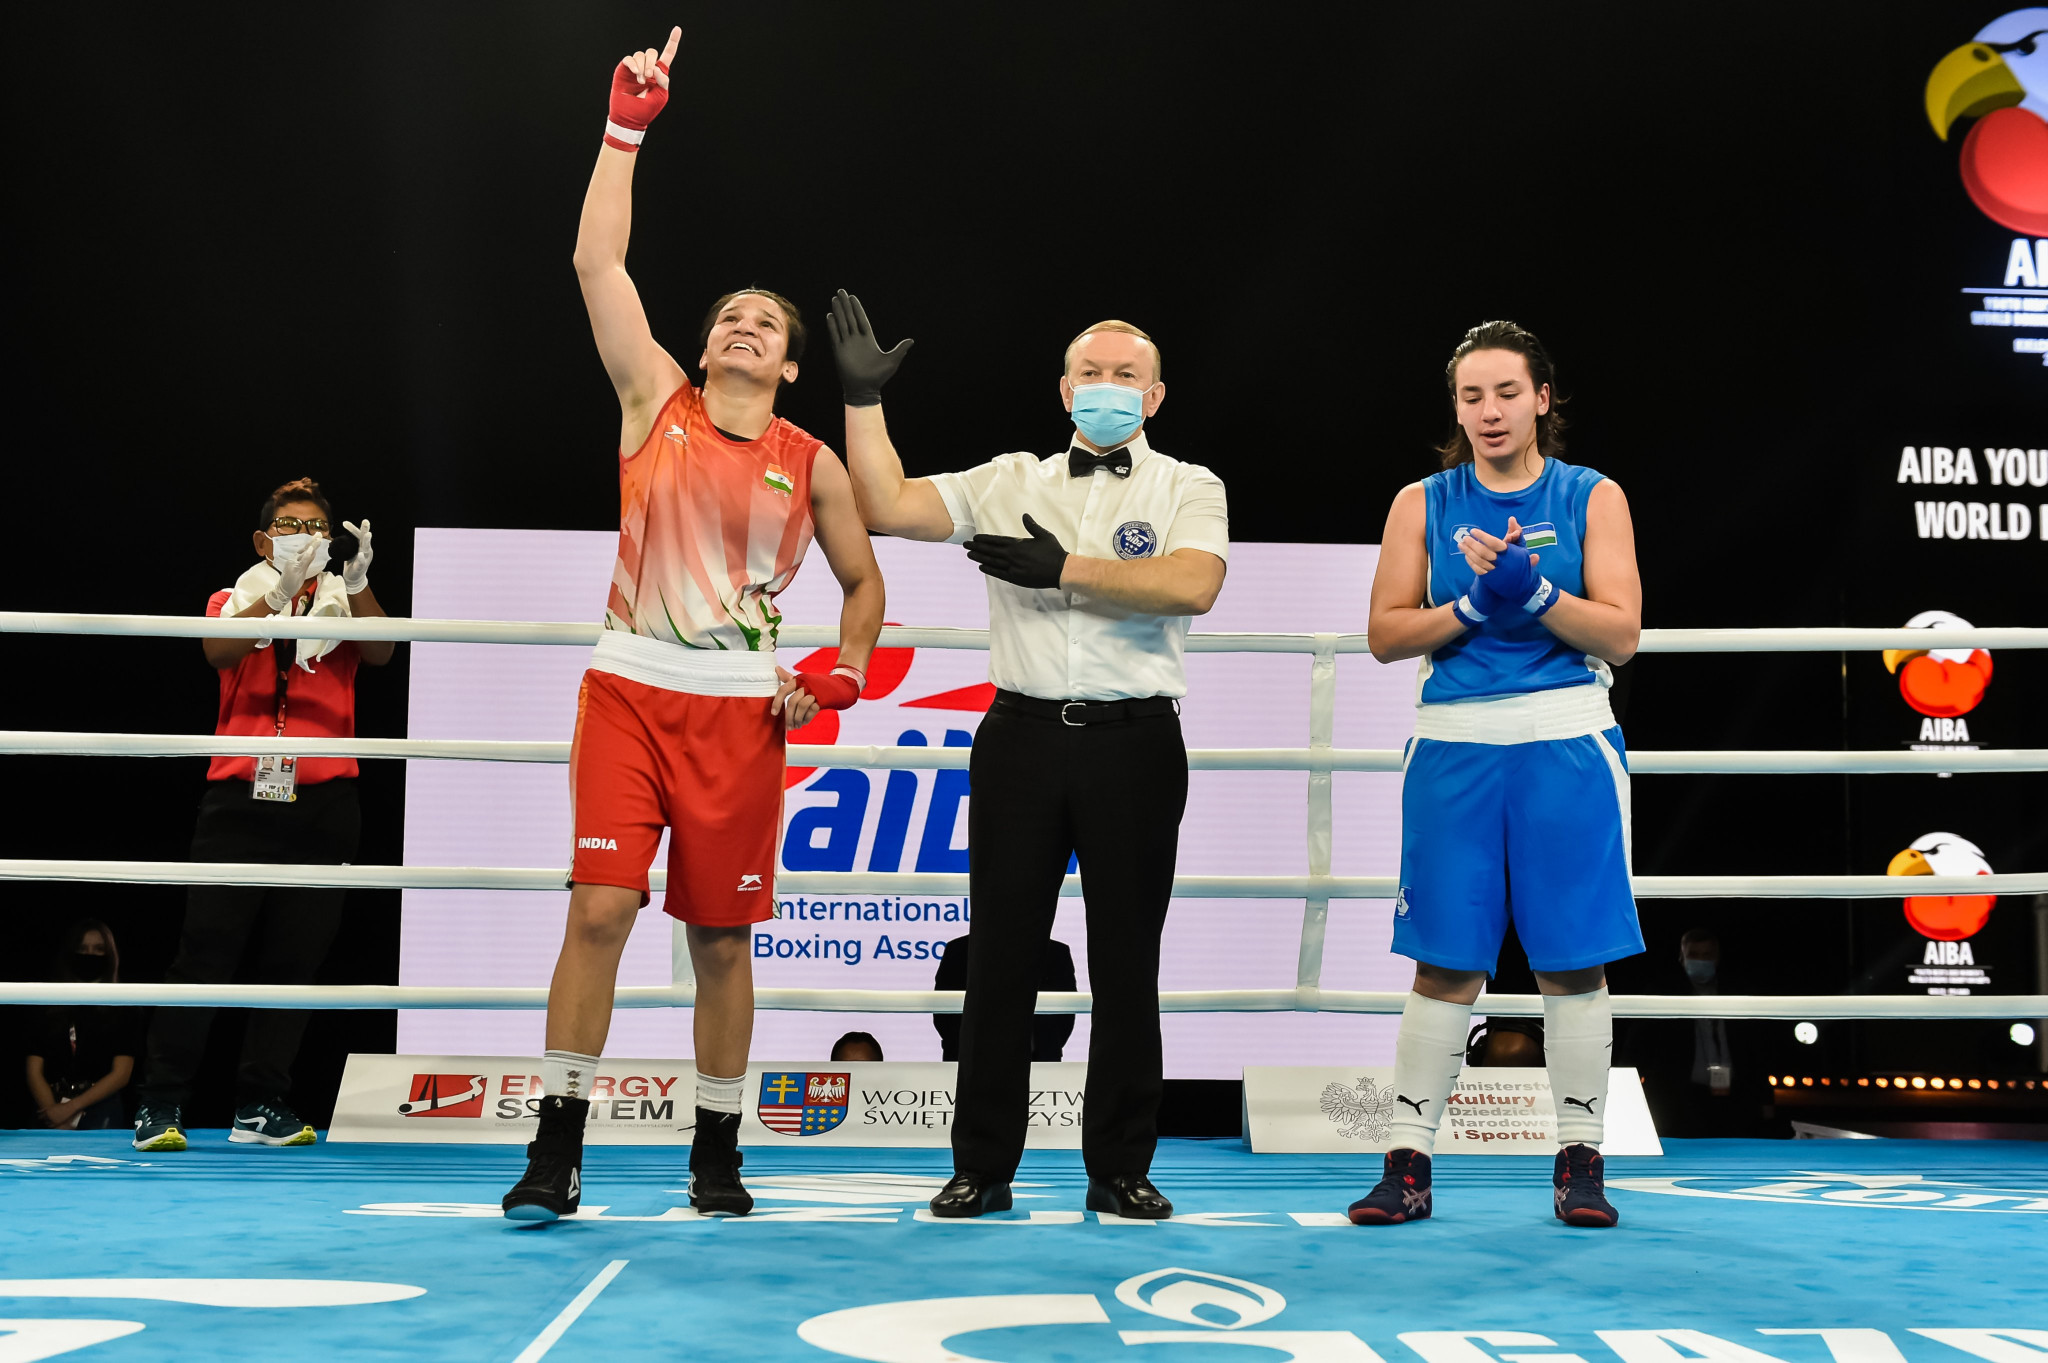 Arundhati Choudhary, in red, outclassed Uzbekistan's Khadichabonu Abdullaeva, winning 30-27 in the eyes of all five judges ©AIBA